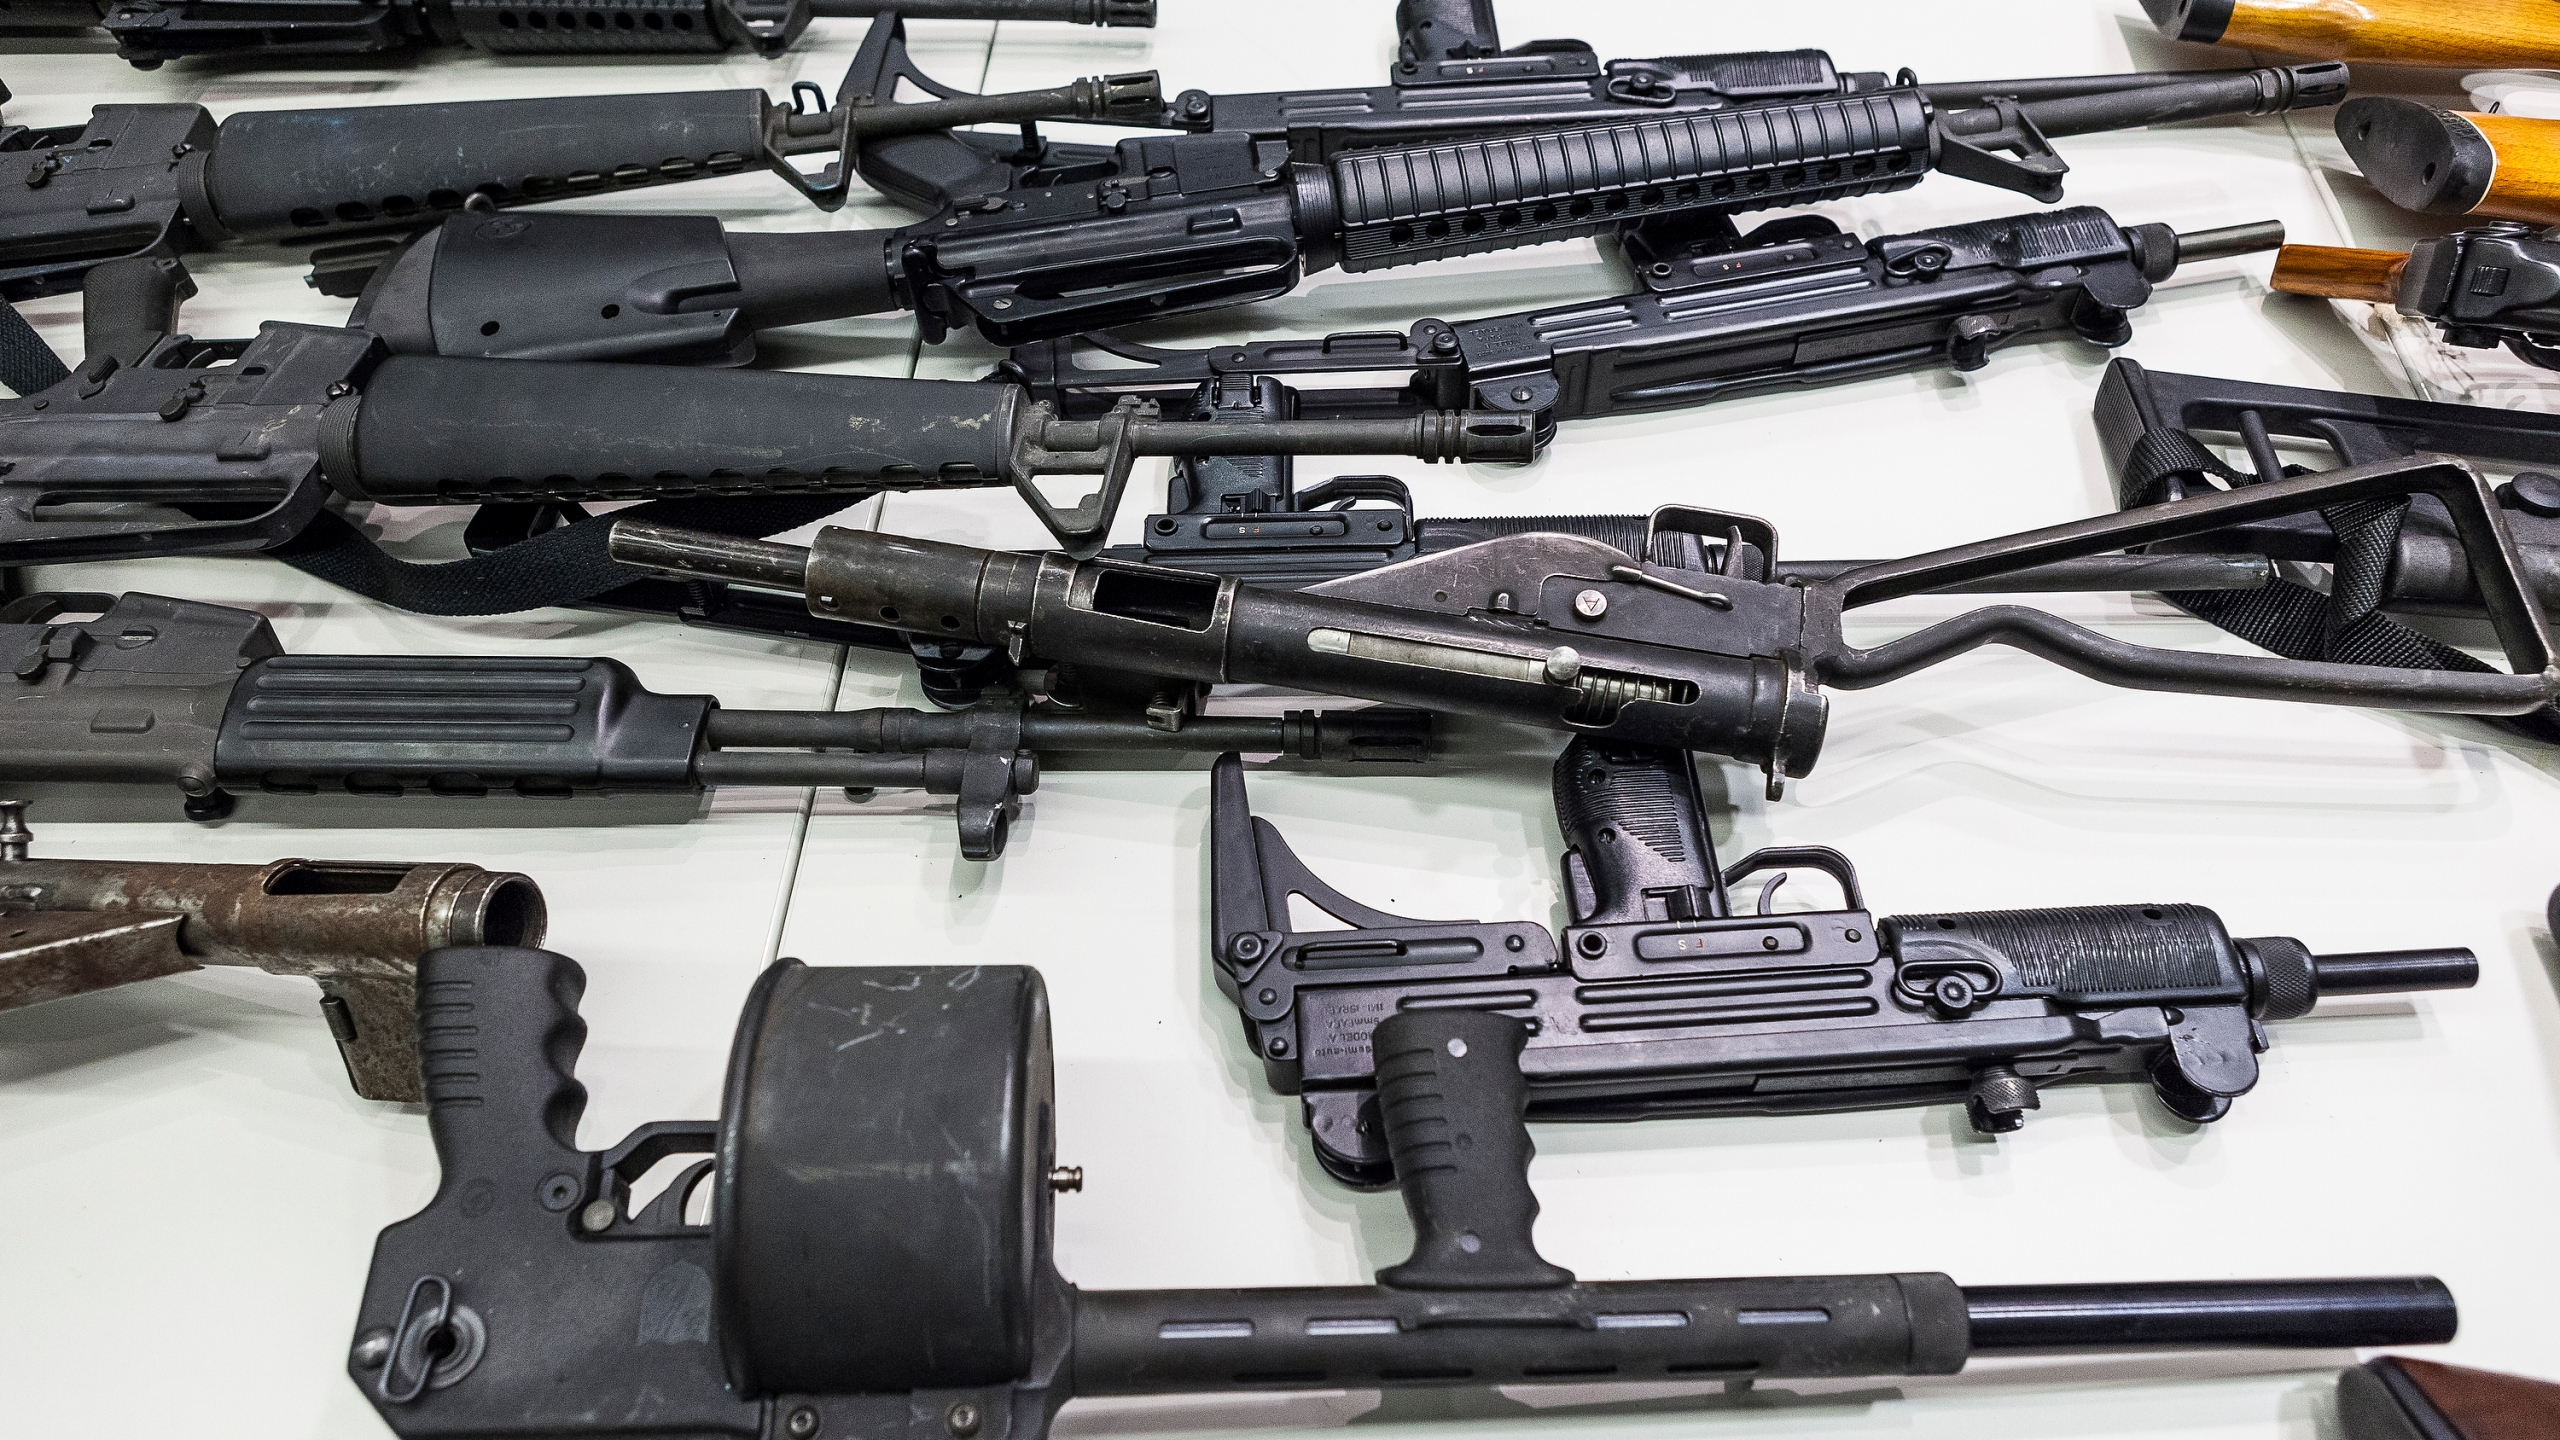 In this Dec. 27, 2012, file photo are some of the weapons that include handguns, rifles, shotguns and assault weapons, collected in a Los Angeles Gun Buyback event displayed during a news conference at the LAPD headquarters in Los Angeles. A federal judge has overturned California's three-decade-old ban on assault weapons, ruling that it violates the constitutional right to bear arms. U.S. District Judge Roger Benitez of San Diego ruled Friday, June 4, 2021, that the state's definition of illegal military-style rifles unlawfully deprives law-abiding Californians of weapons commonly allowed in most other states. (AP Photo/Damian Dovarganes, File)